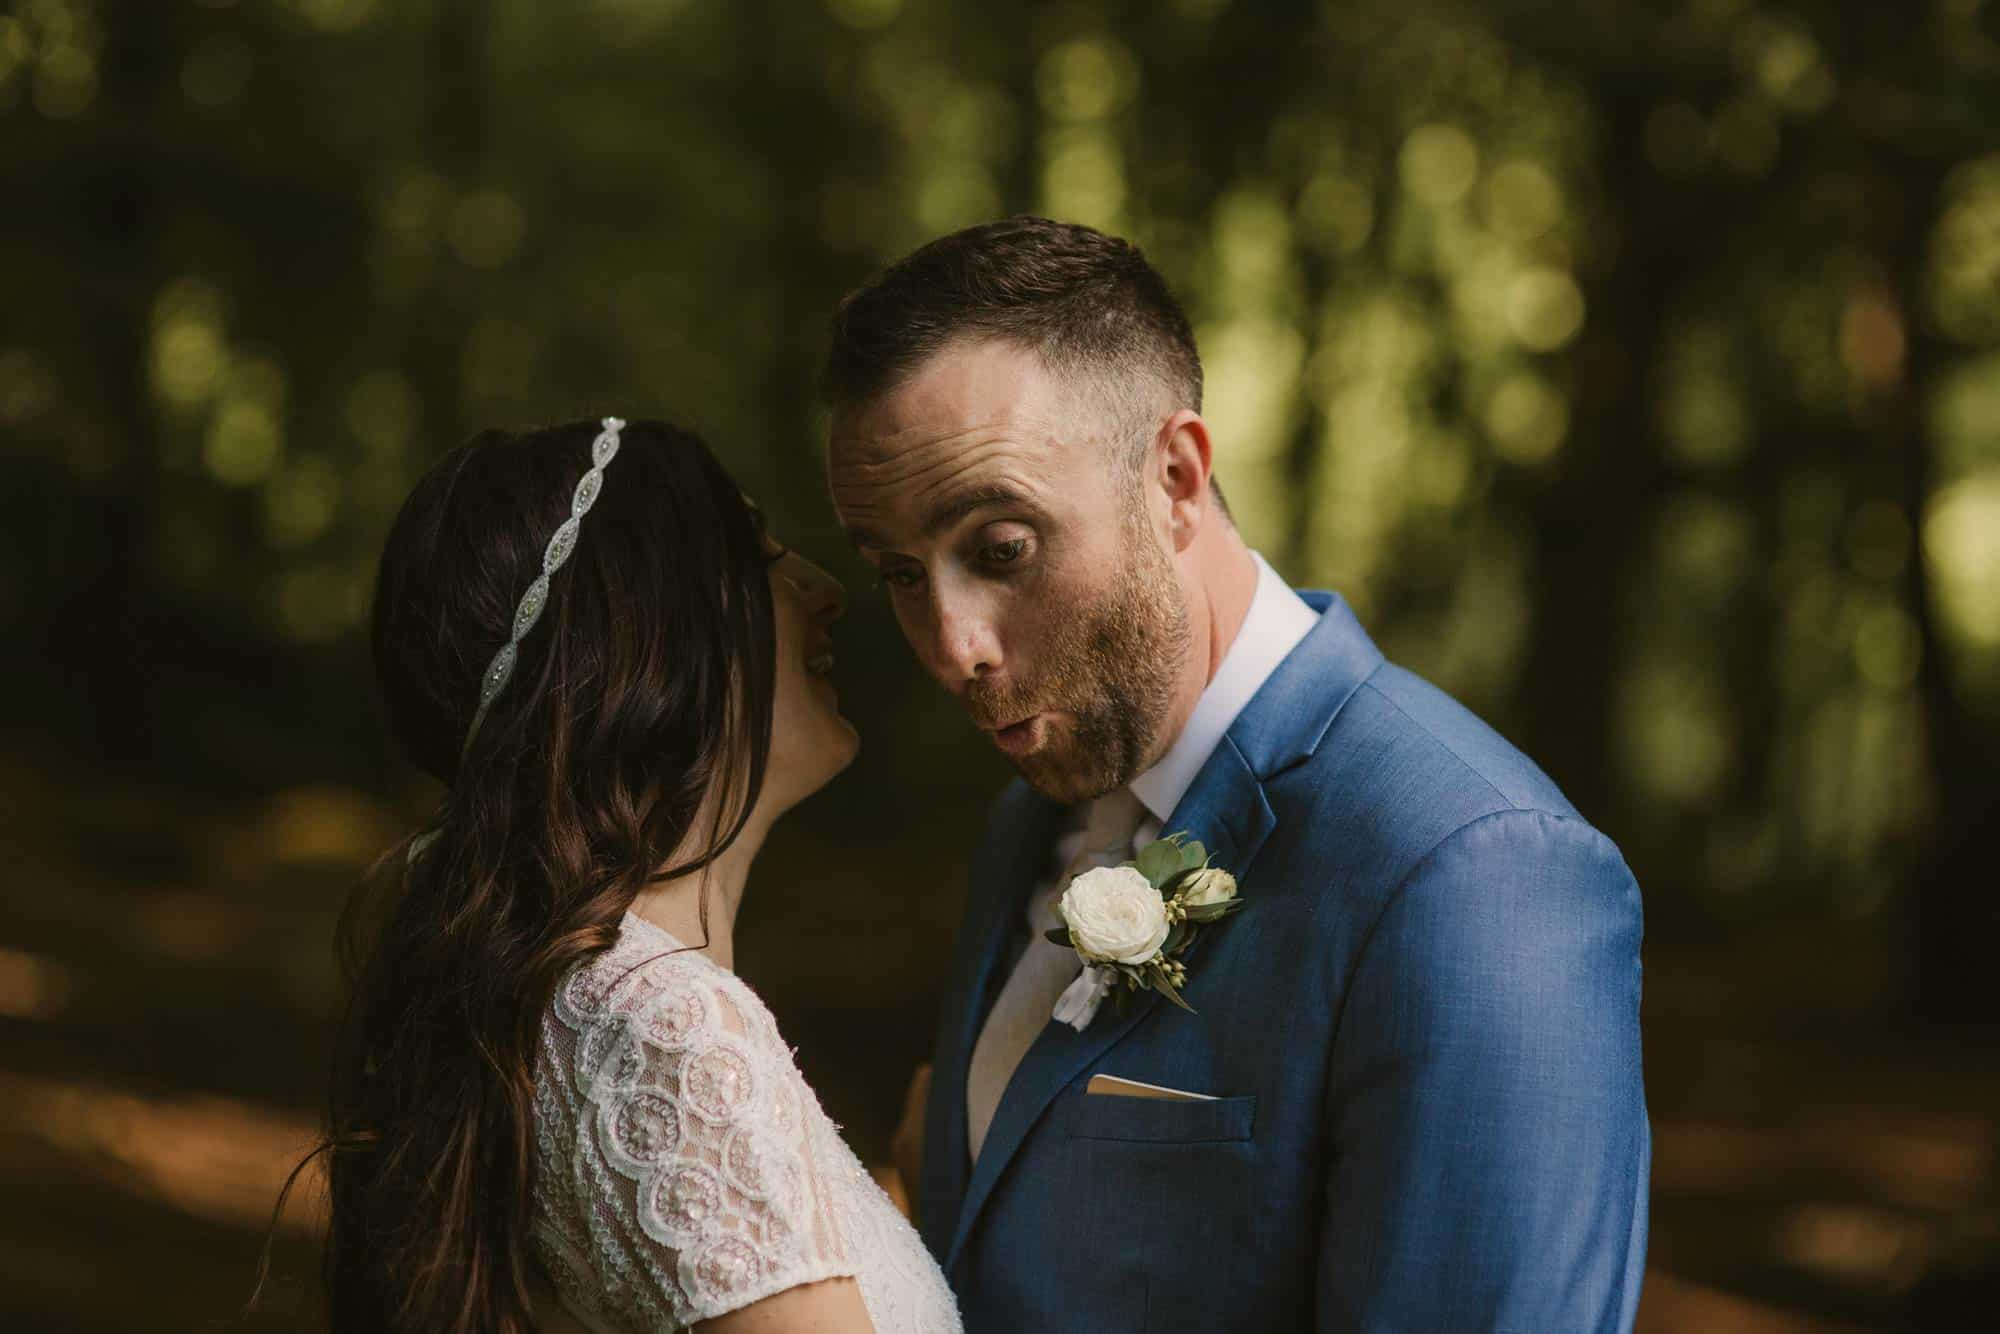 Elopement videographer Ireland, telling secrets